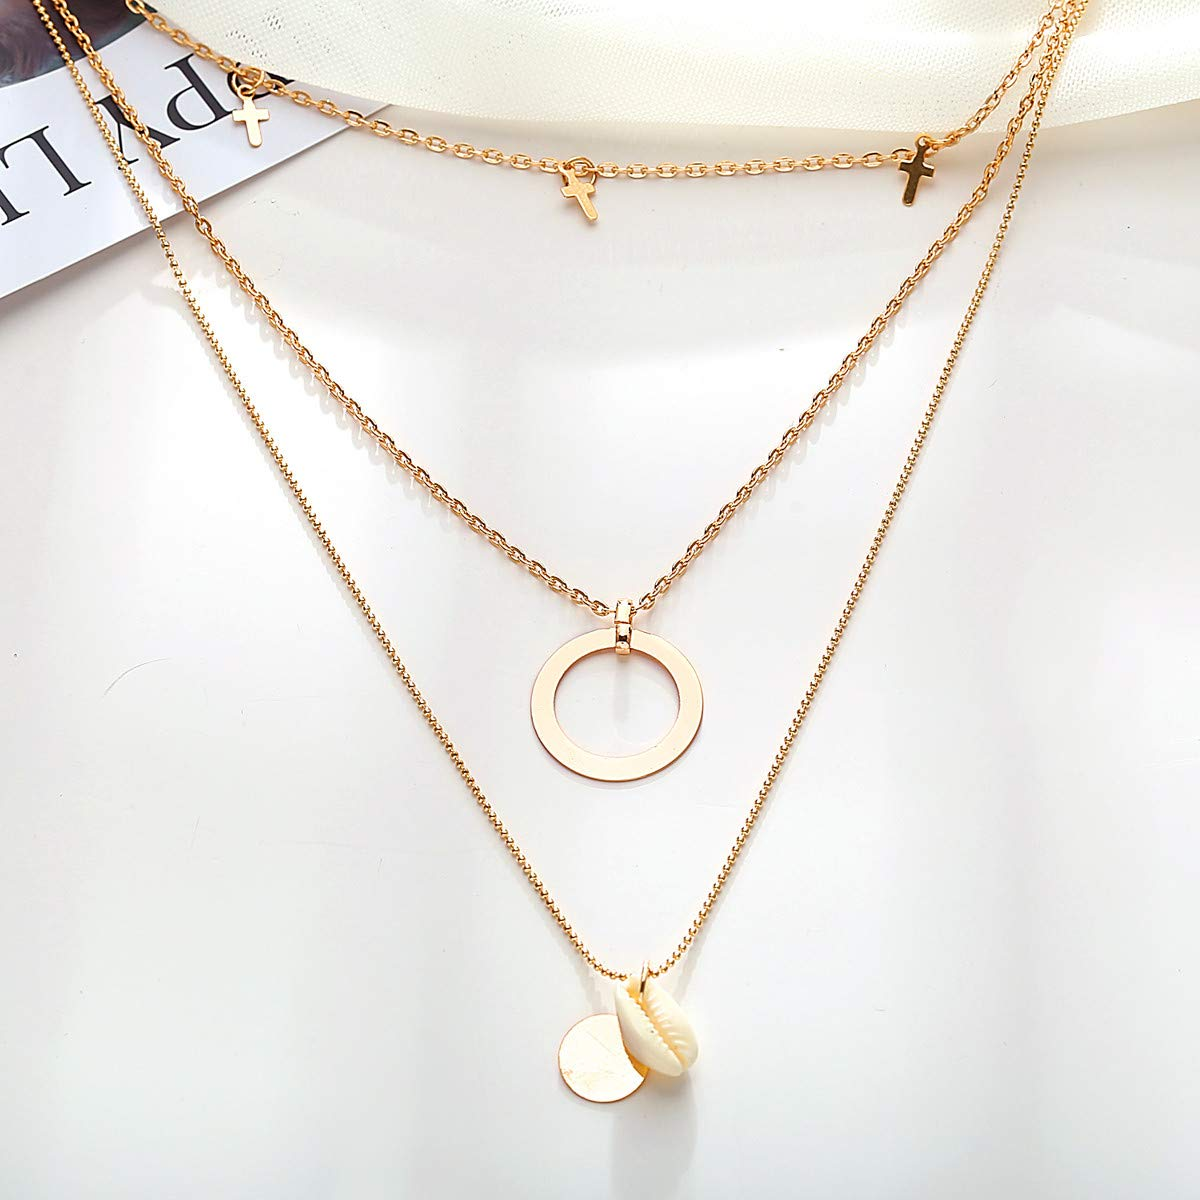 Peigen 2019 New Multilayer Crystal Shell Pendant Necklaces for Women Vintage Charm Choker Necklace Statement Party Jewelry Gift